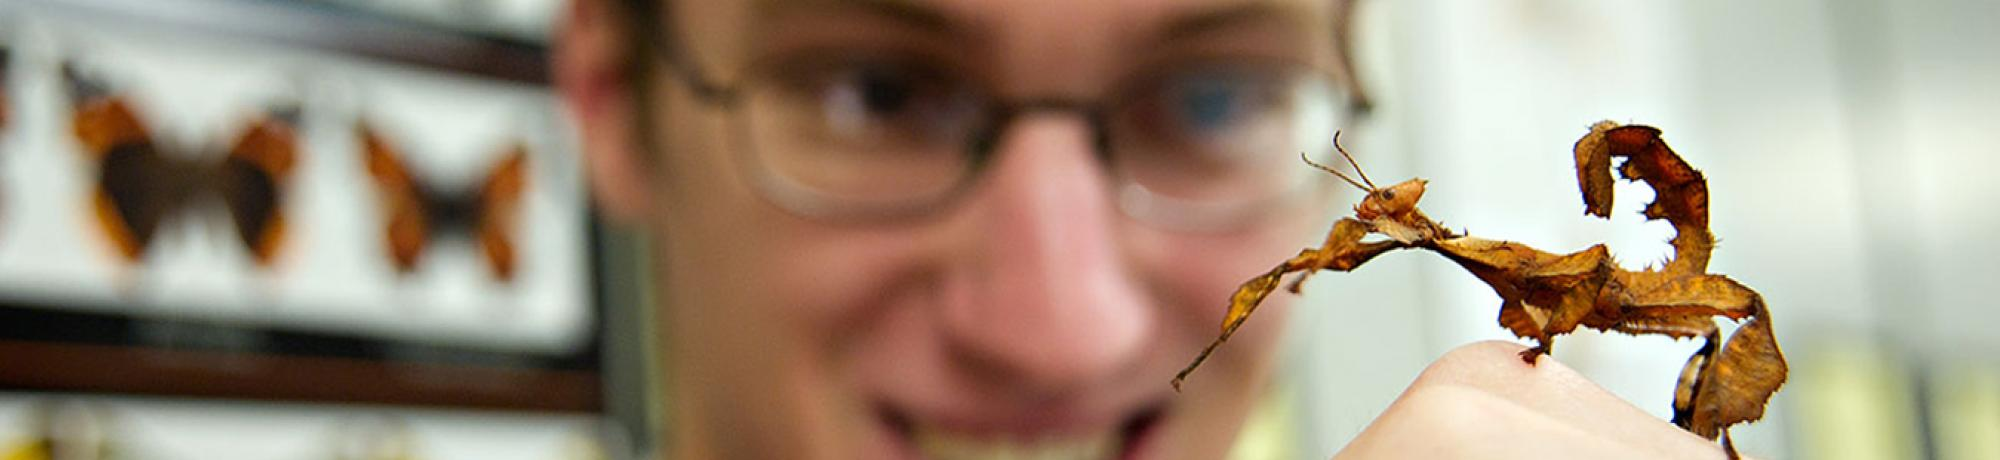 Student holding praying mantis